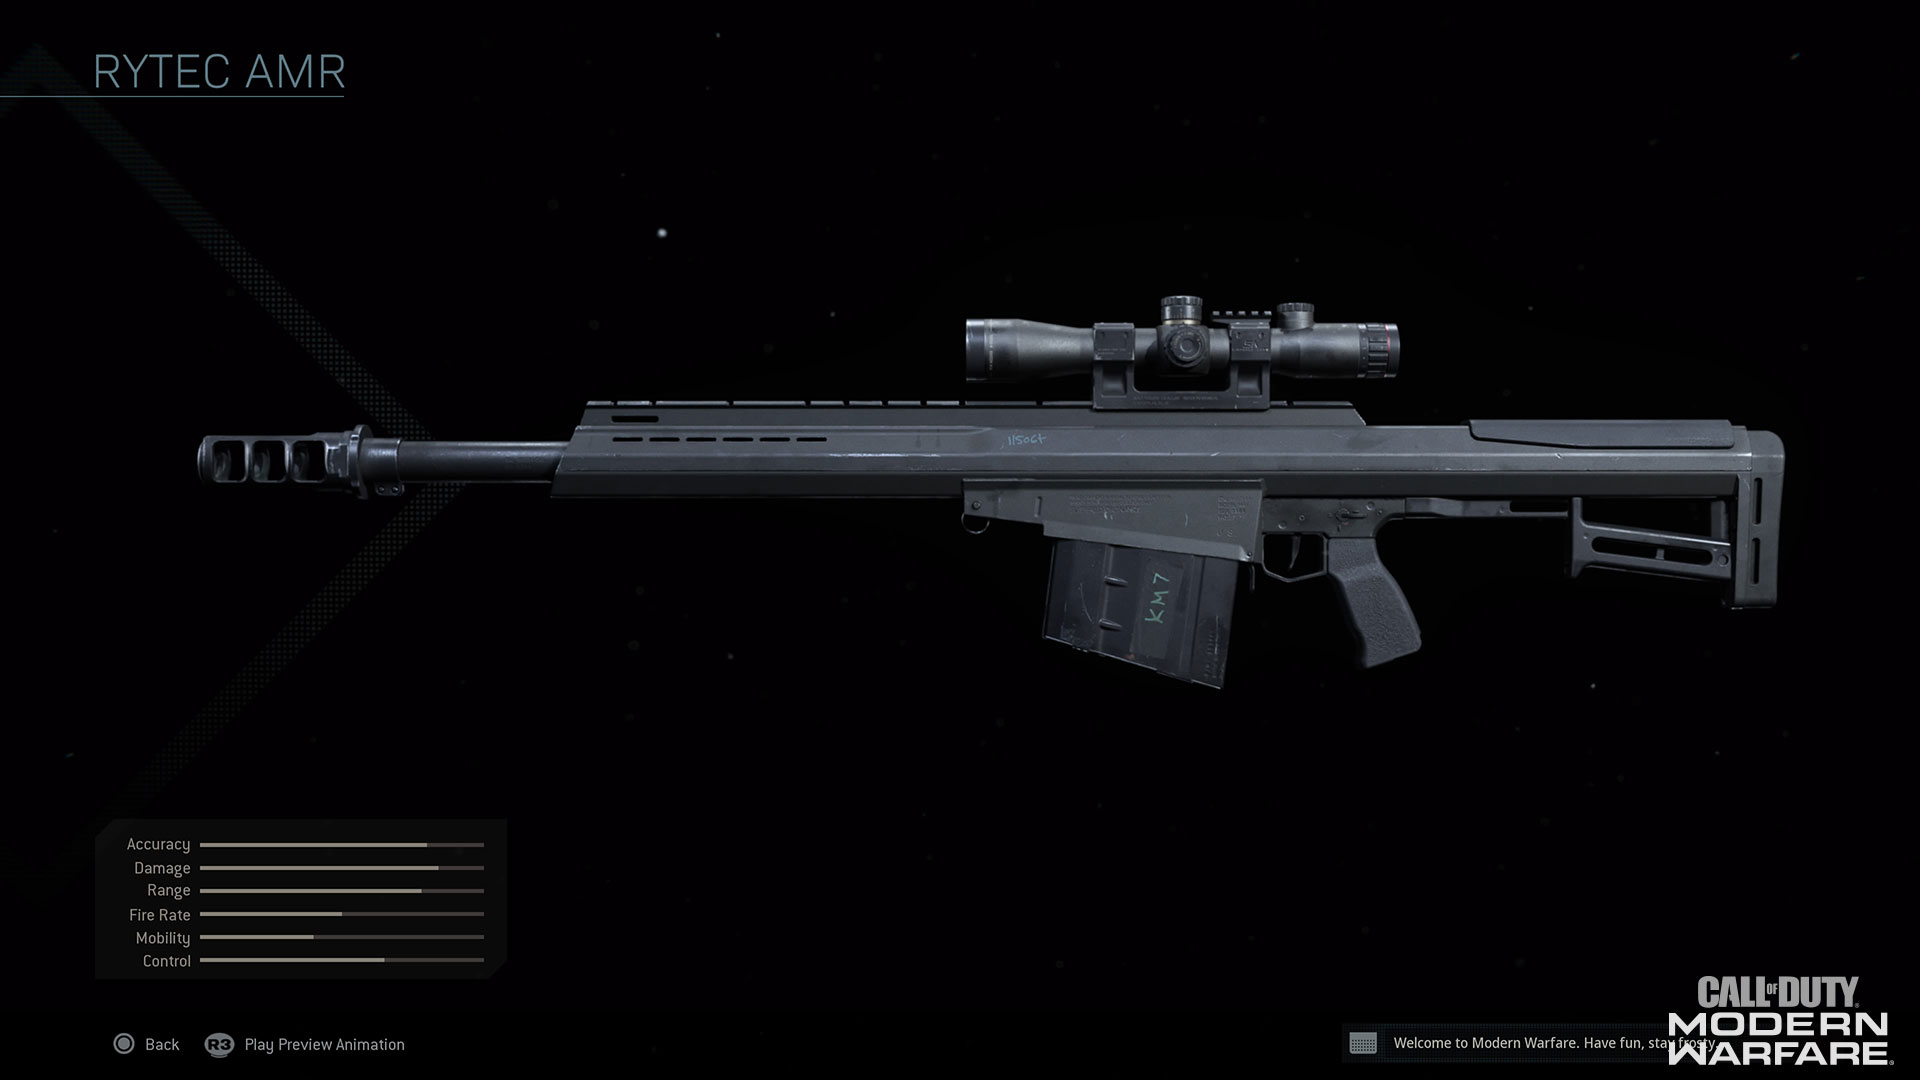 The Rytec AMR: How to Unlock the New Sniper Rifle in Call of Duty®: Modern Warfare® - Image 1